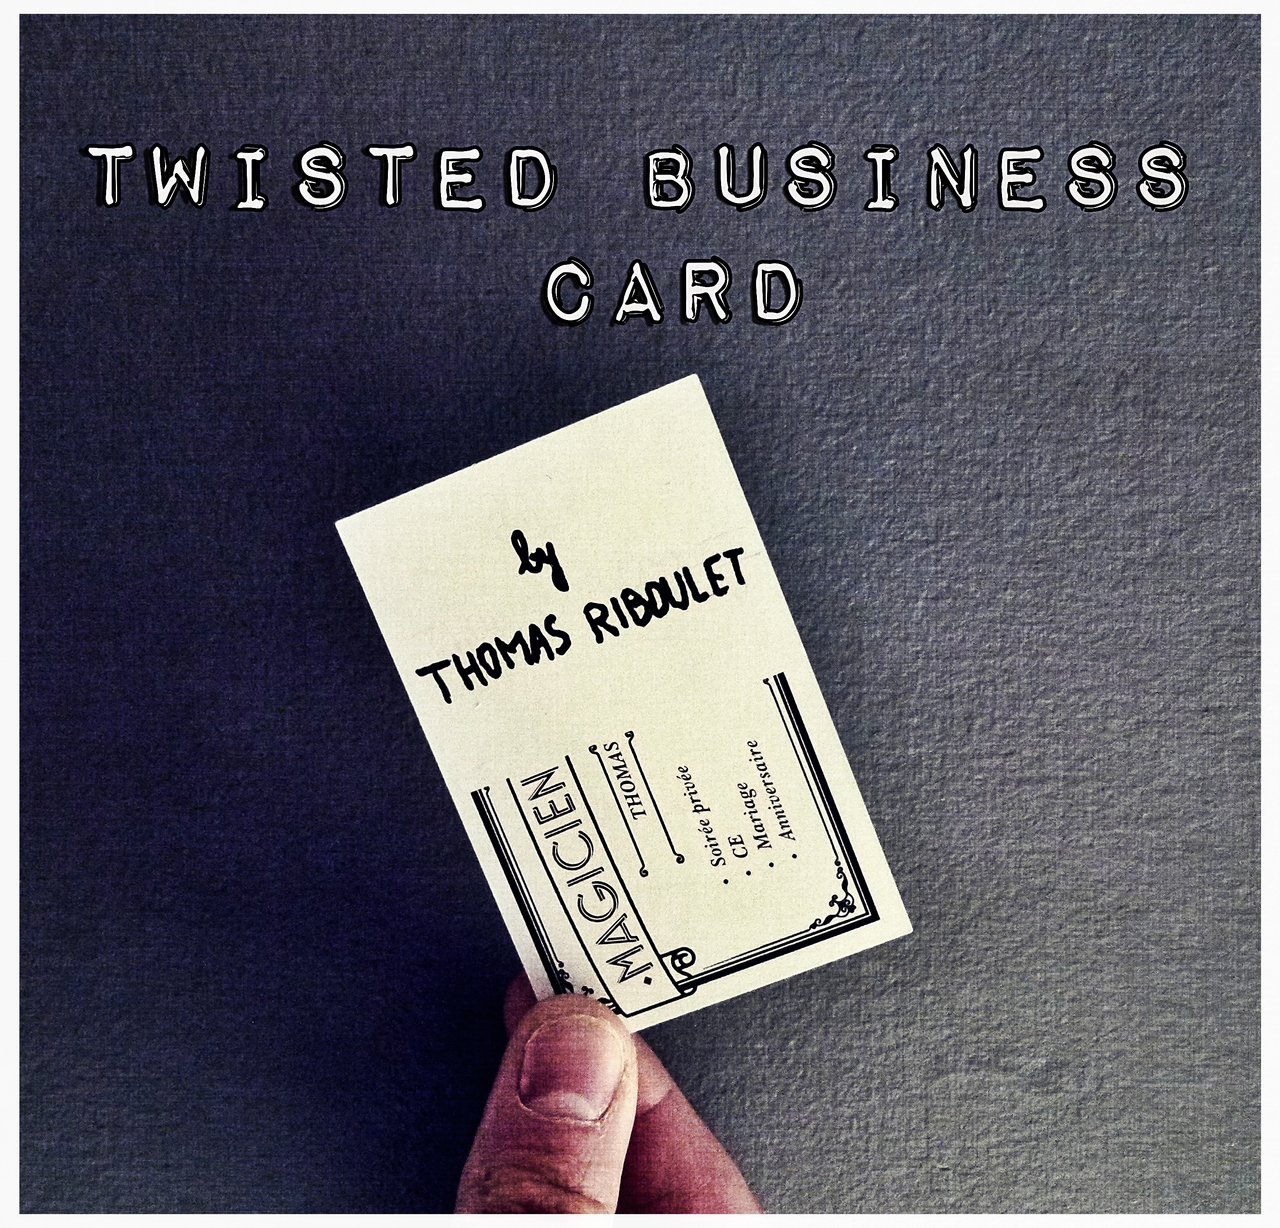 Twisted Business Card by Thomas Riboulet Instant Download